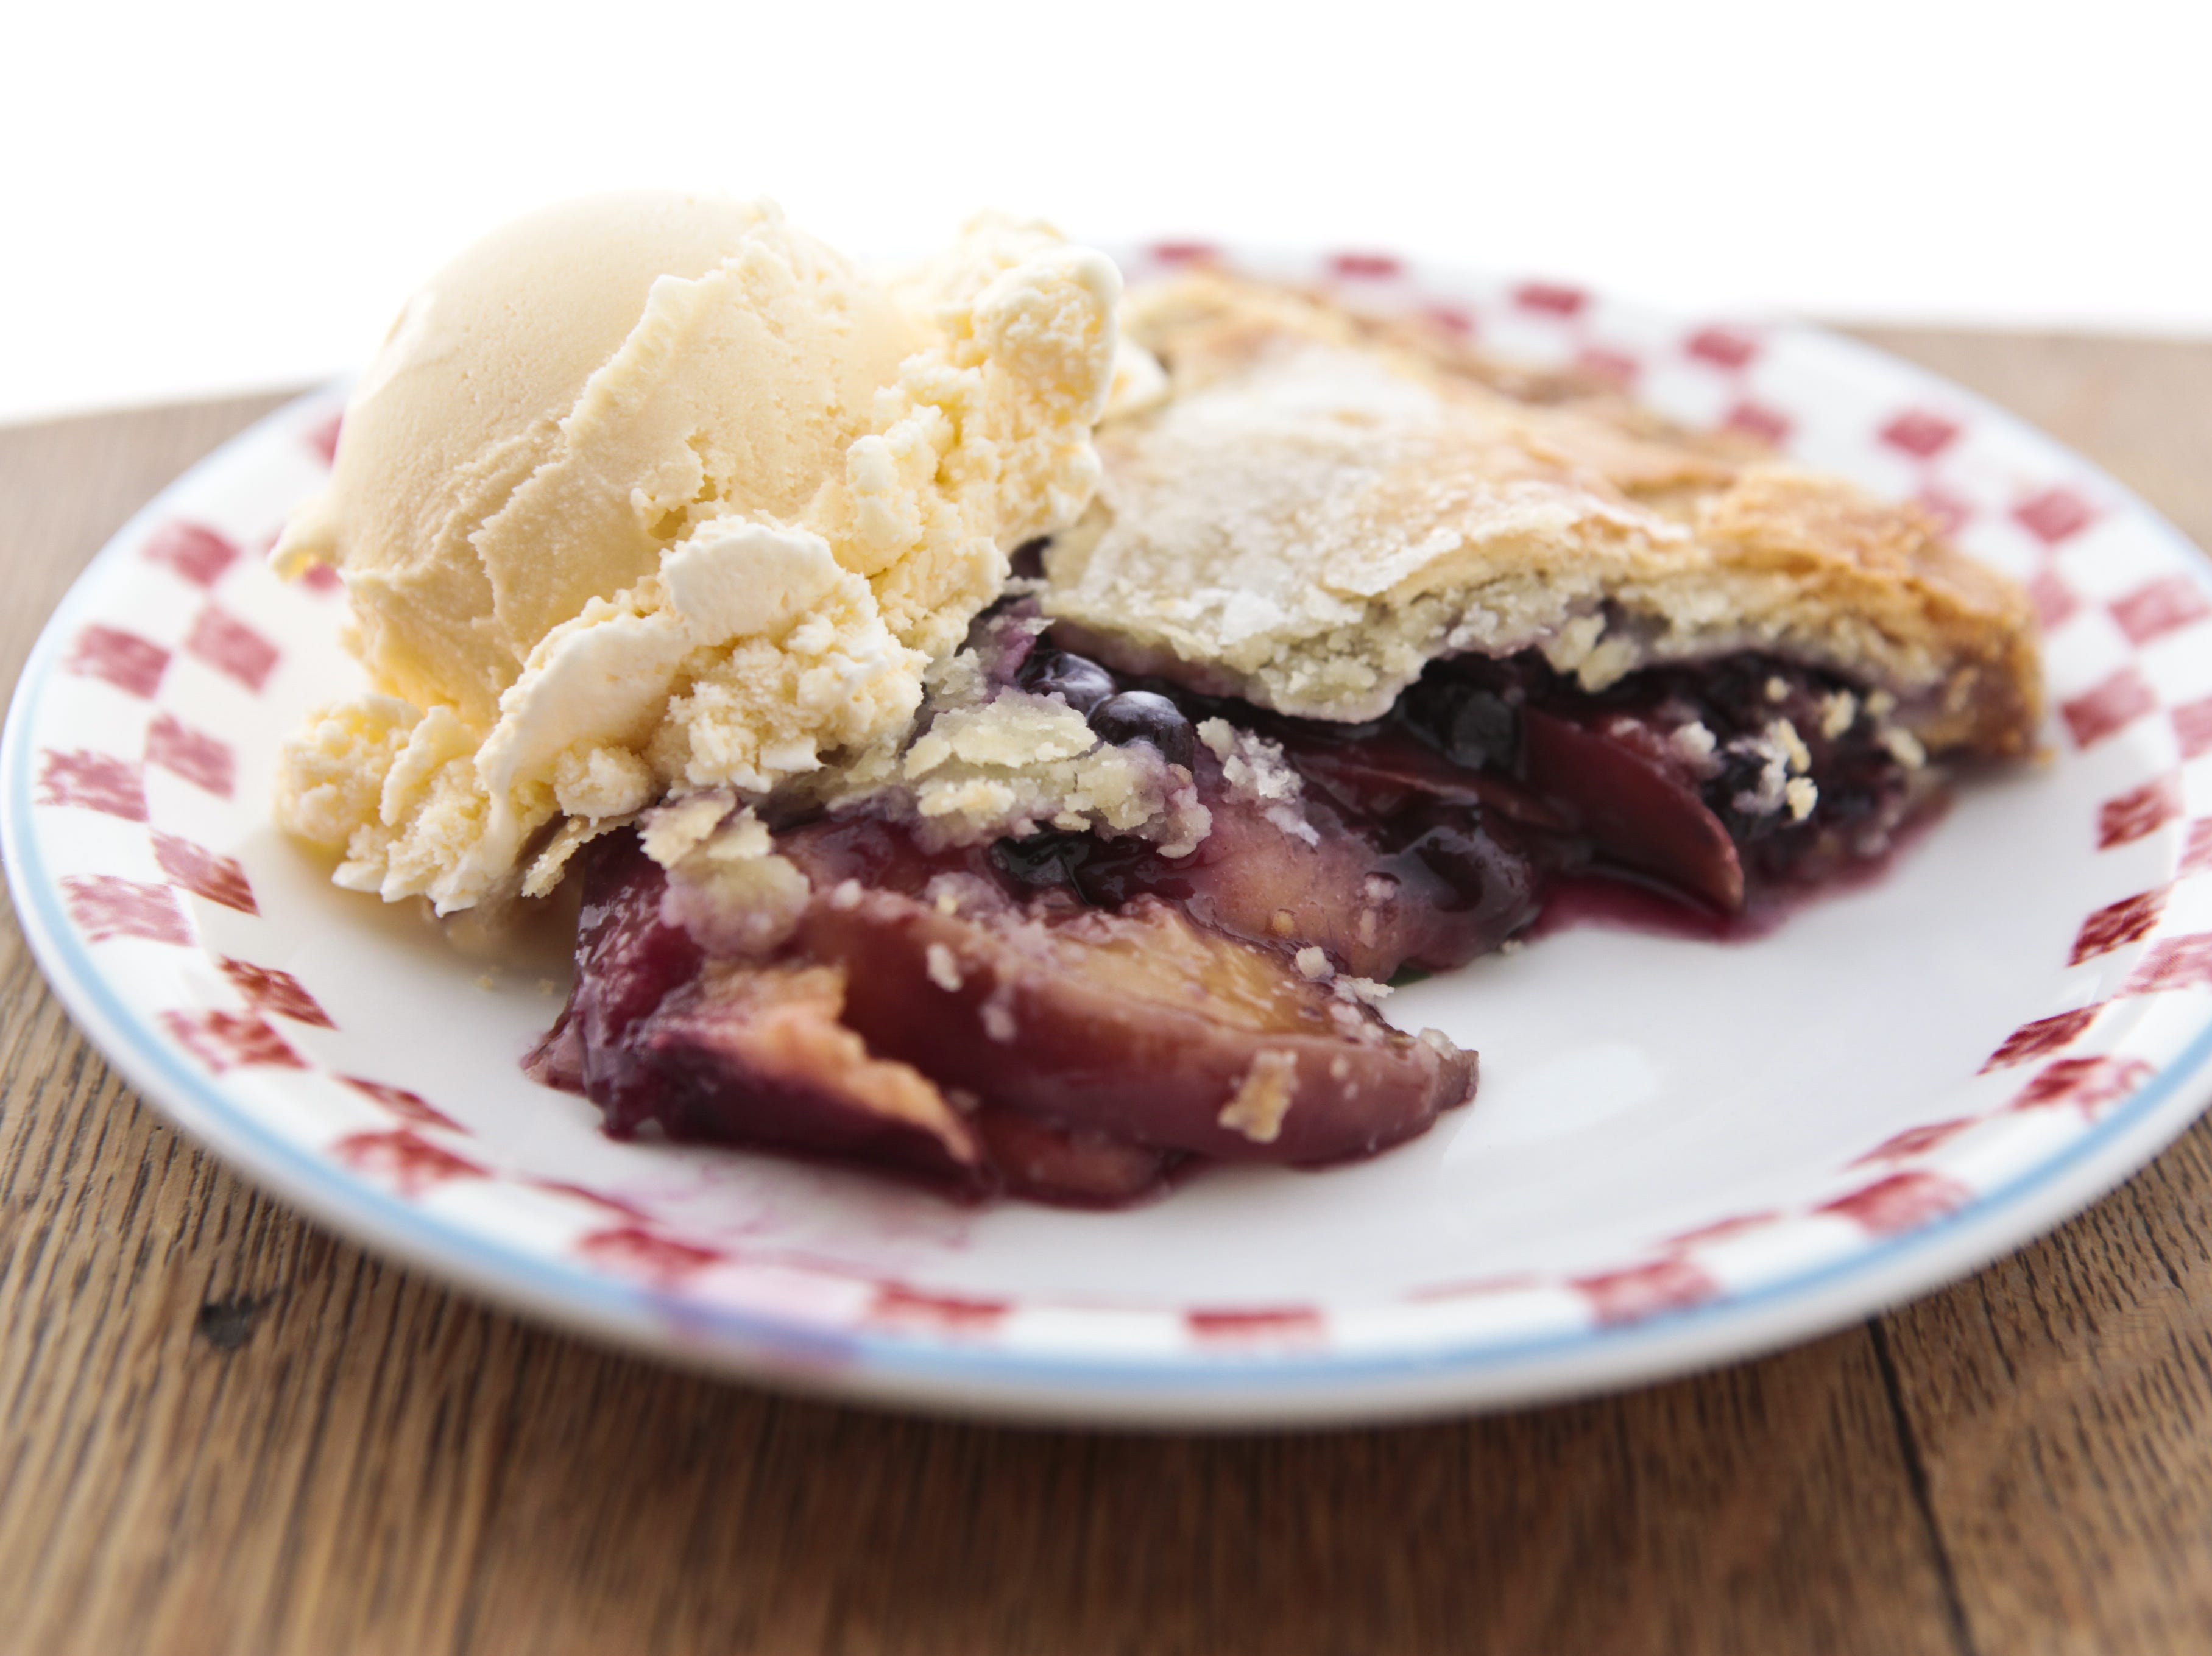 Kiss the Cook | This breakfast and lunch restaurant has a soft spot for dessert. Go for delicious flavors such as raisin cream pie ($22), bourbon pecan ($24) and Michigan sour cherry ($22). |Details: 4915 W. Glendale Ave., Glendale. 623-939-4663, kissthecookrestaurant.com.